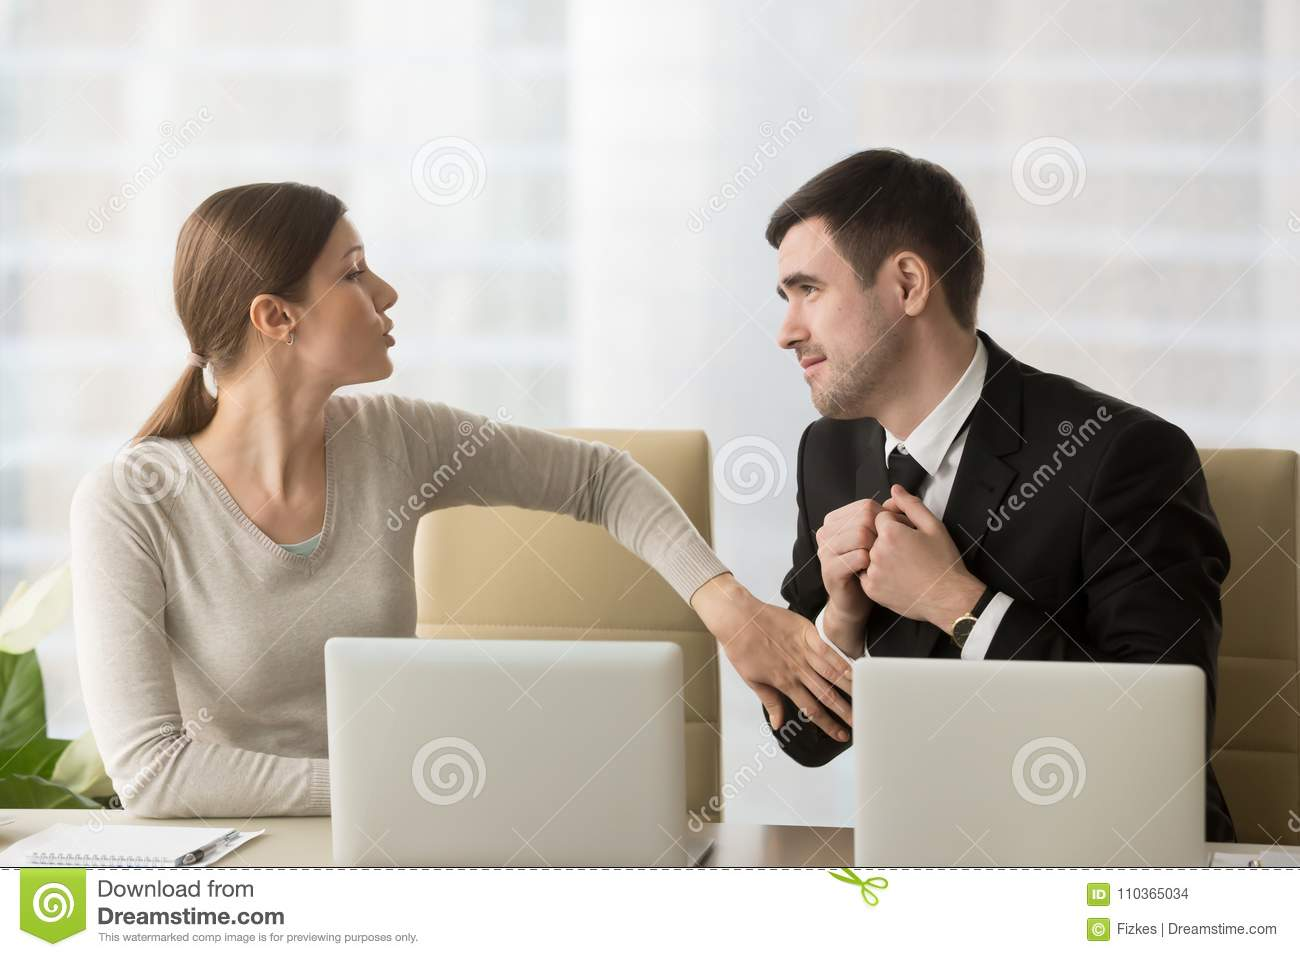 Businessman asking female colleague about favor